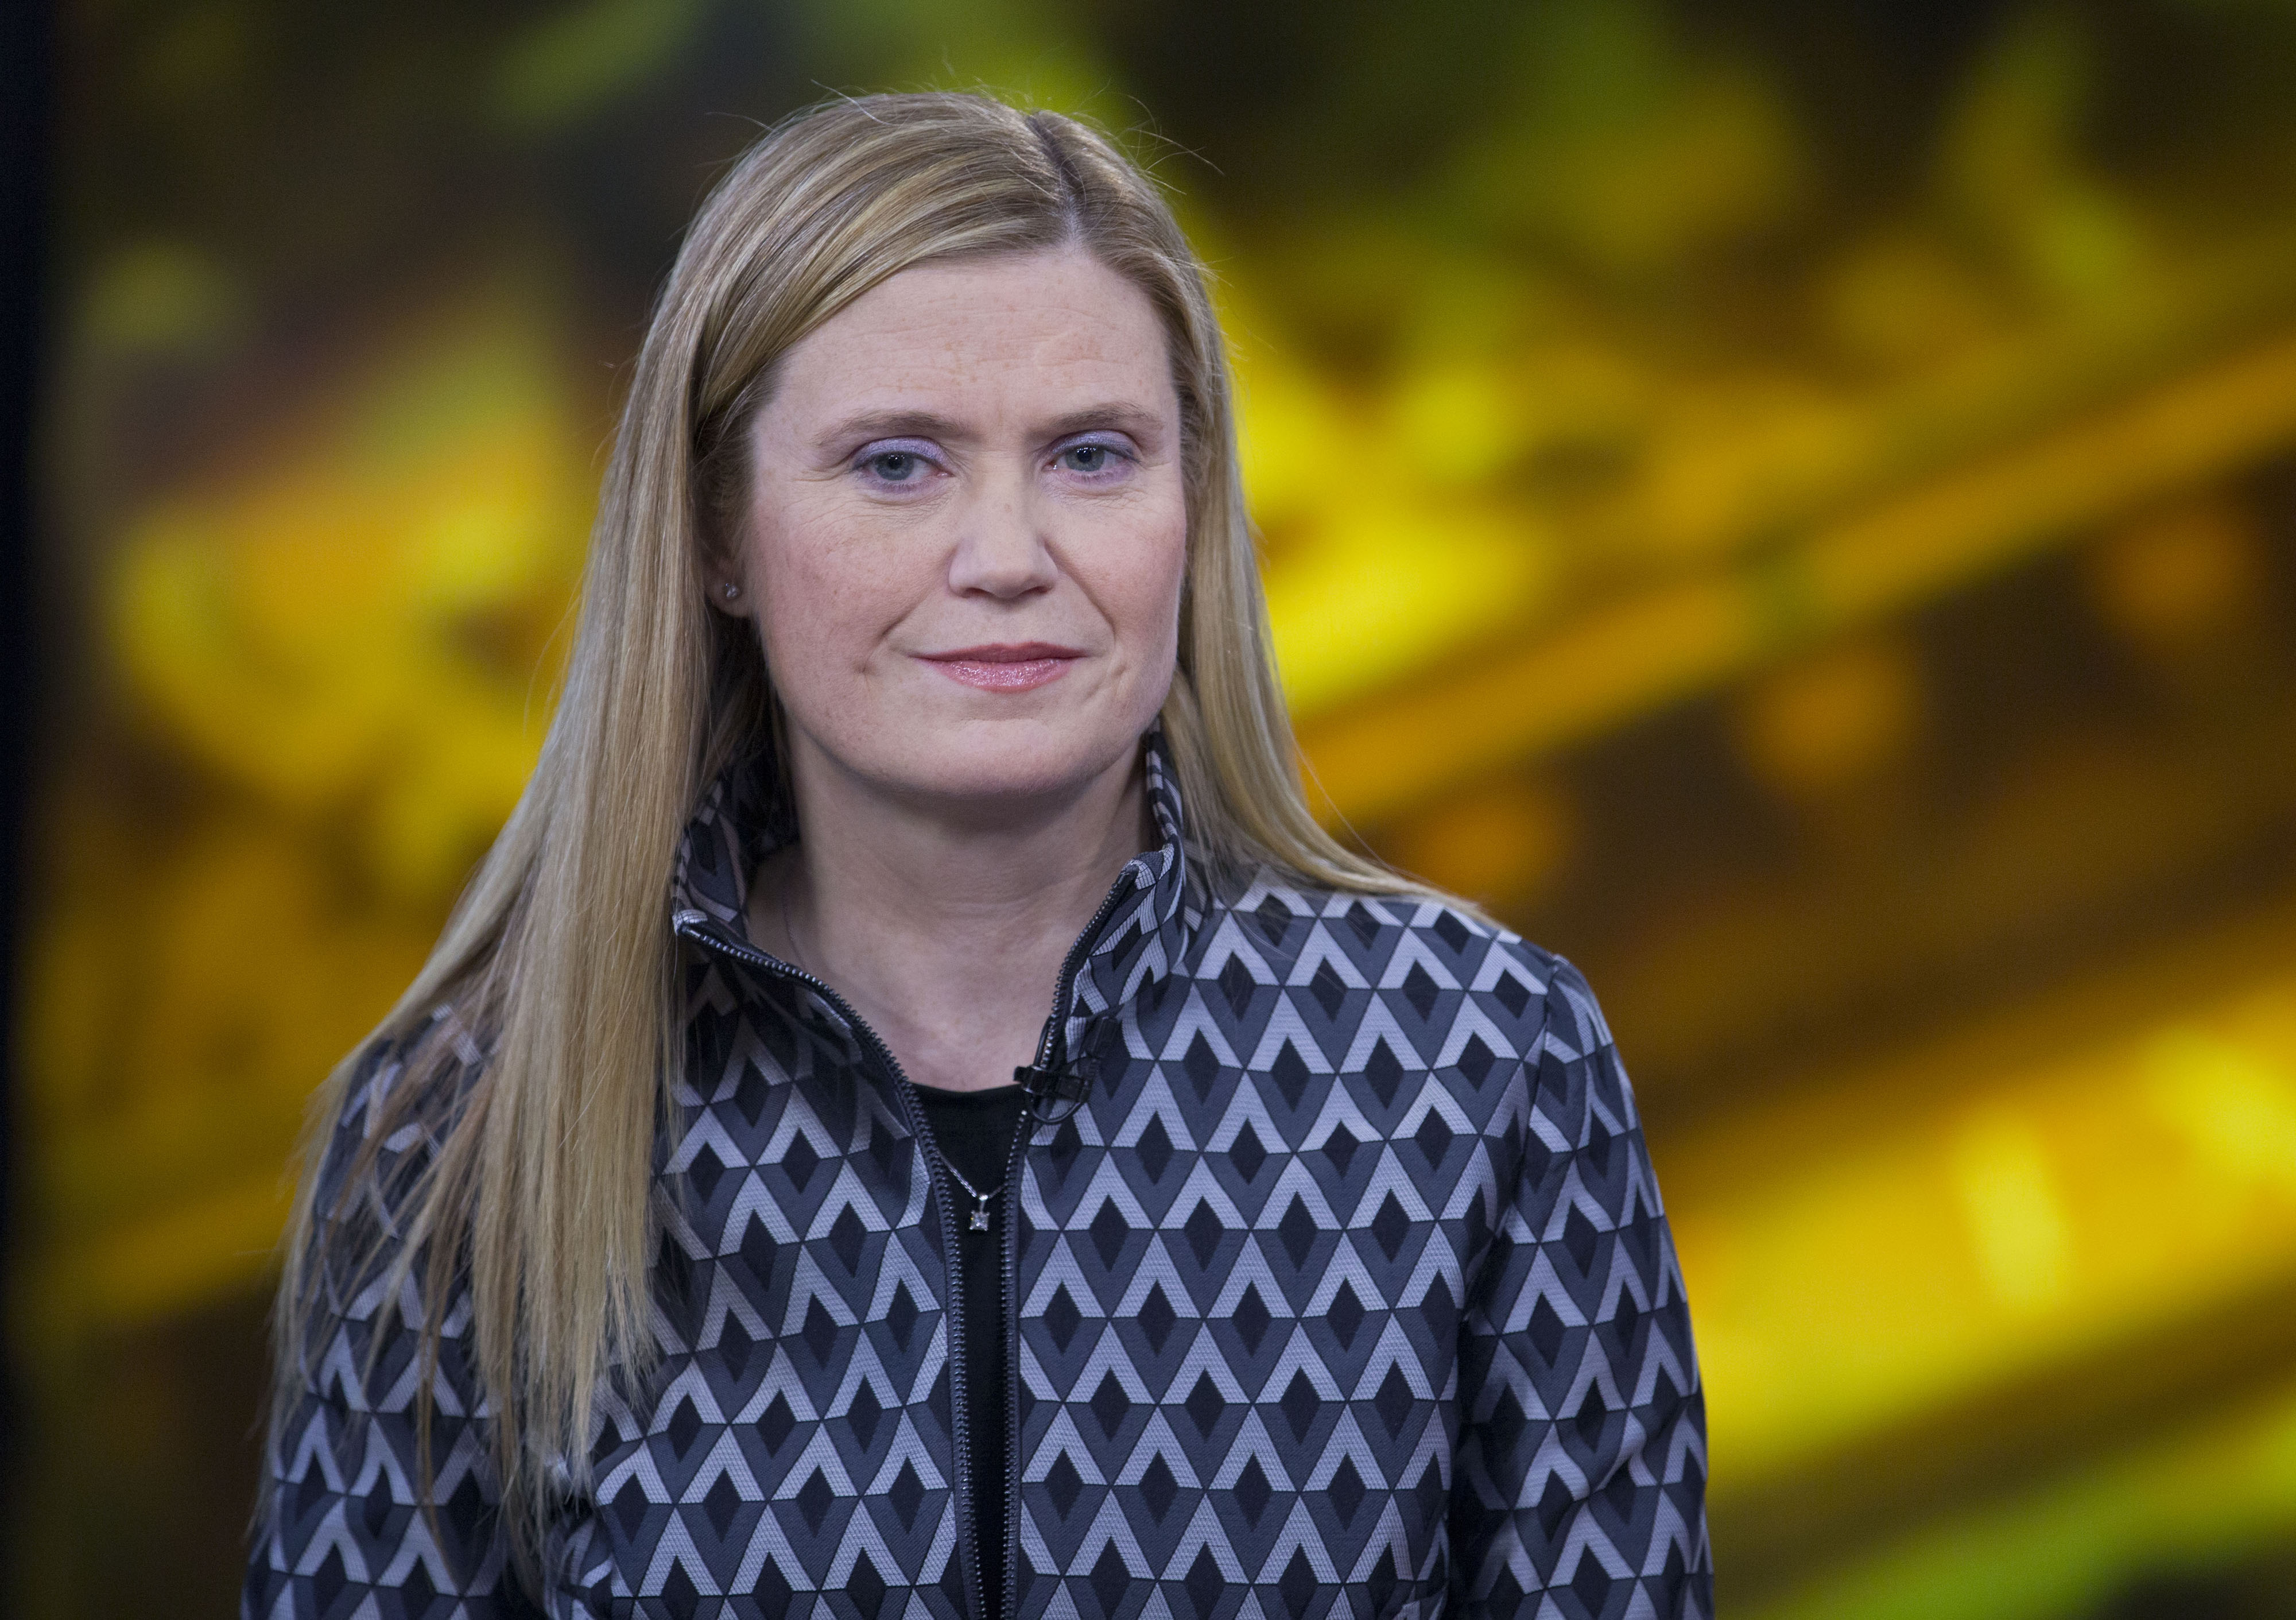 JPMorgan Chase Chief Financial Officer Marianne Lake Interview